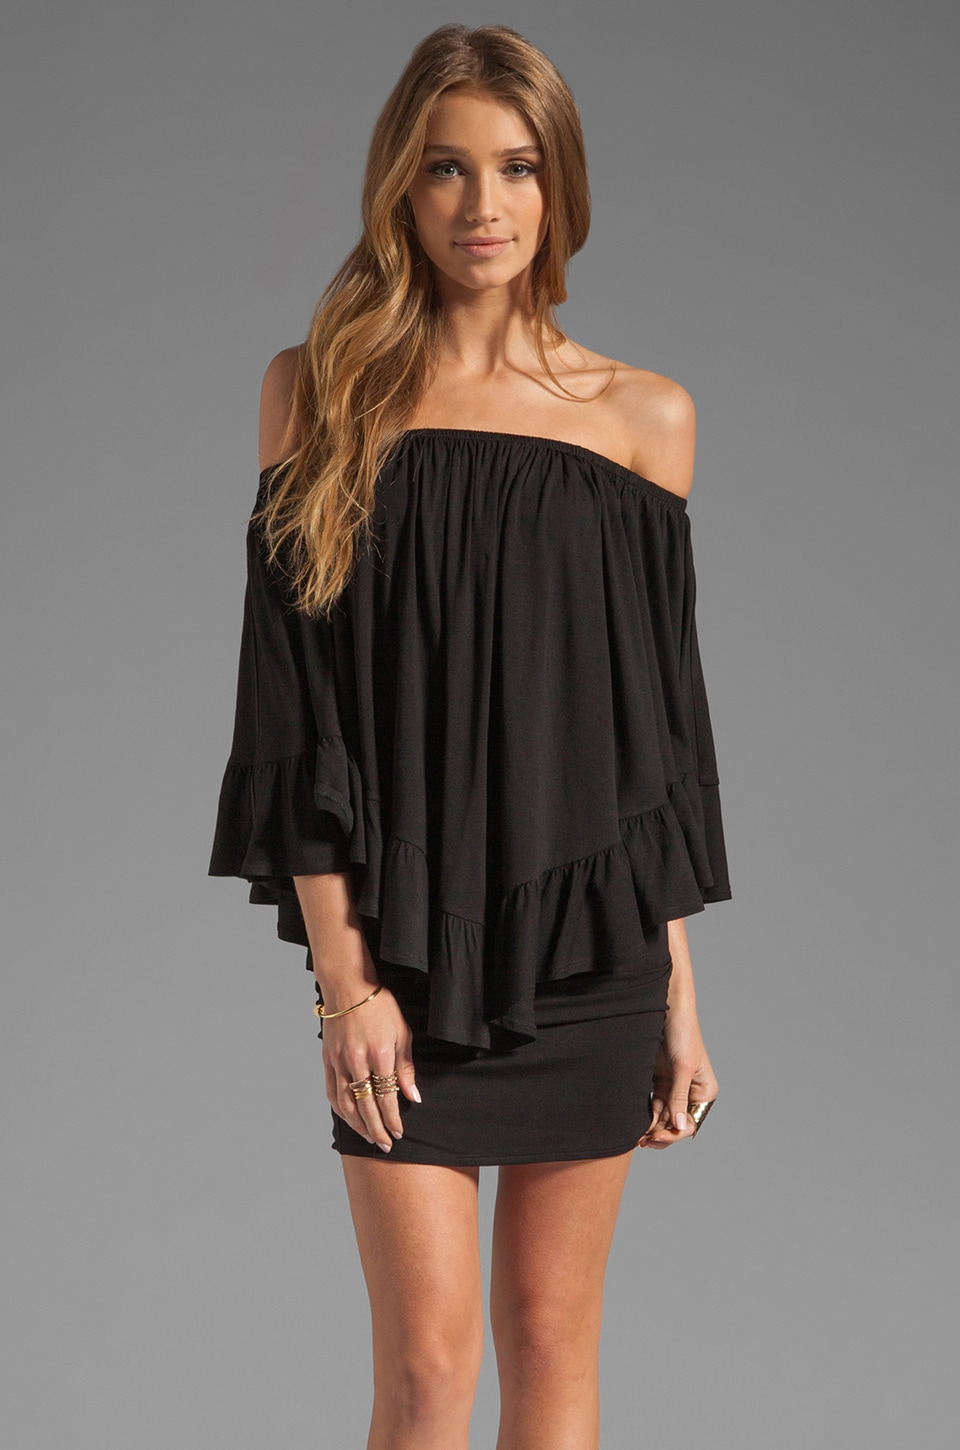 James & Joy Haley Convertible Dress in Black